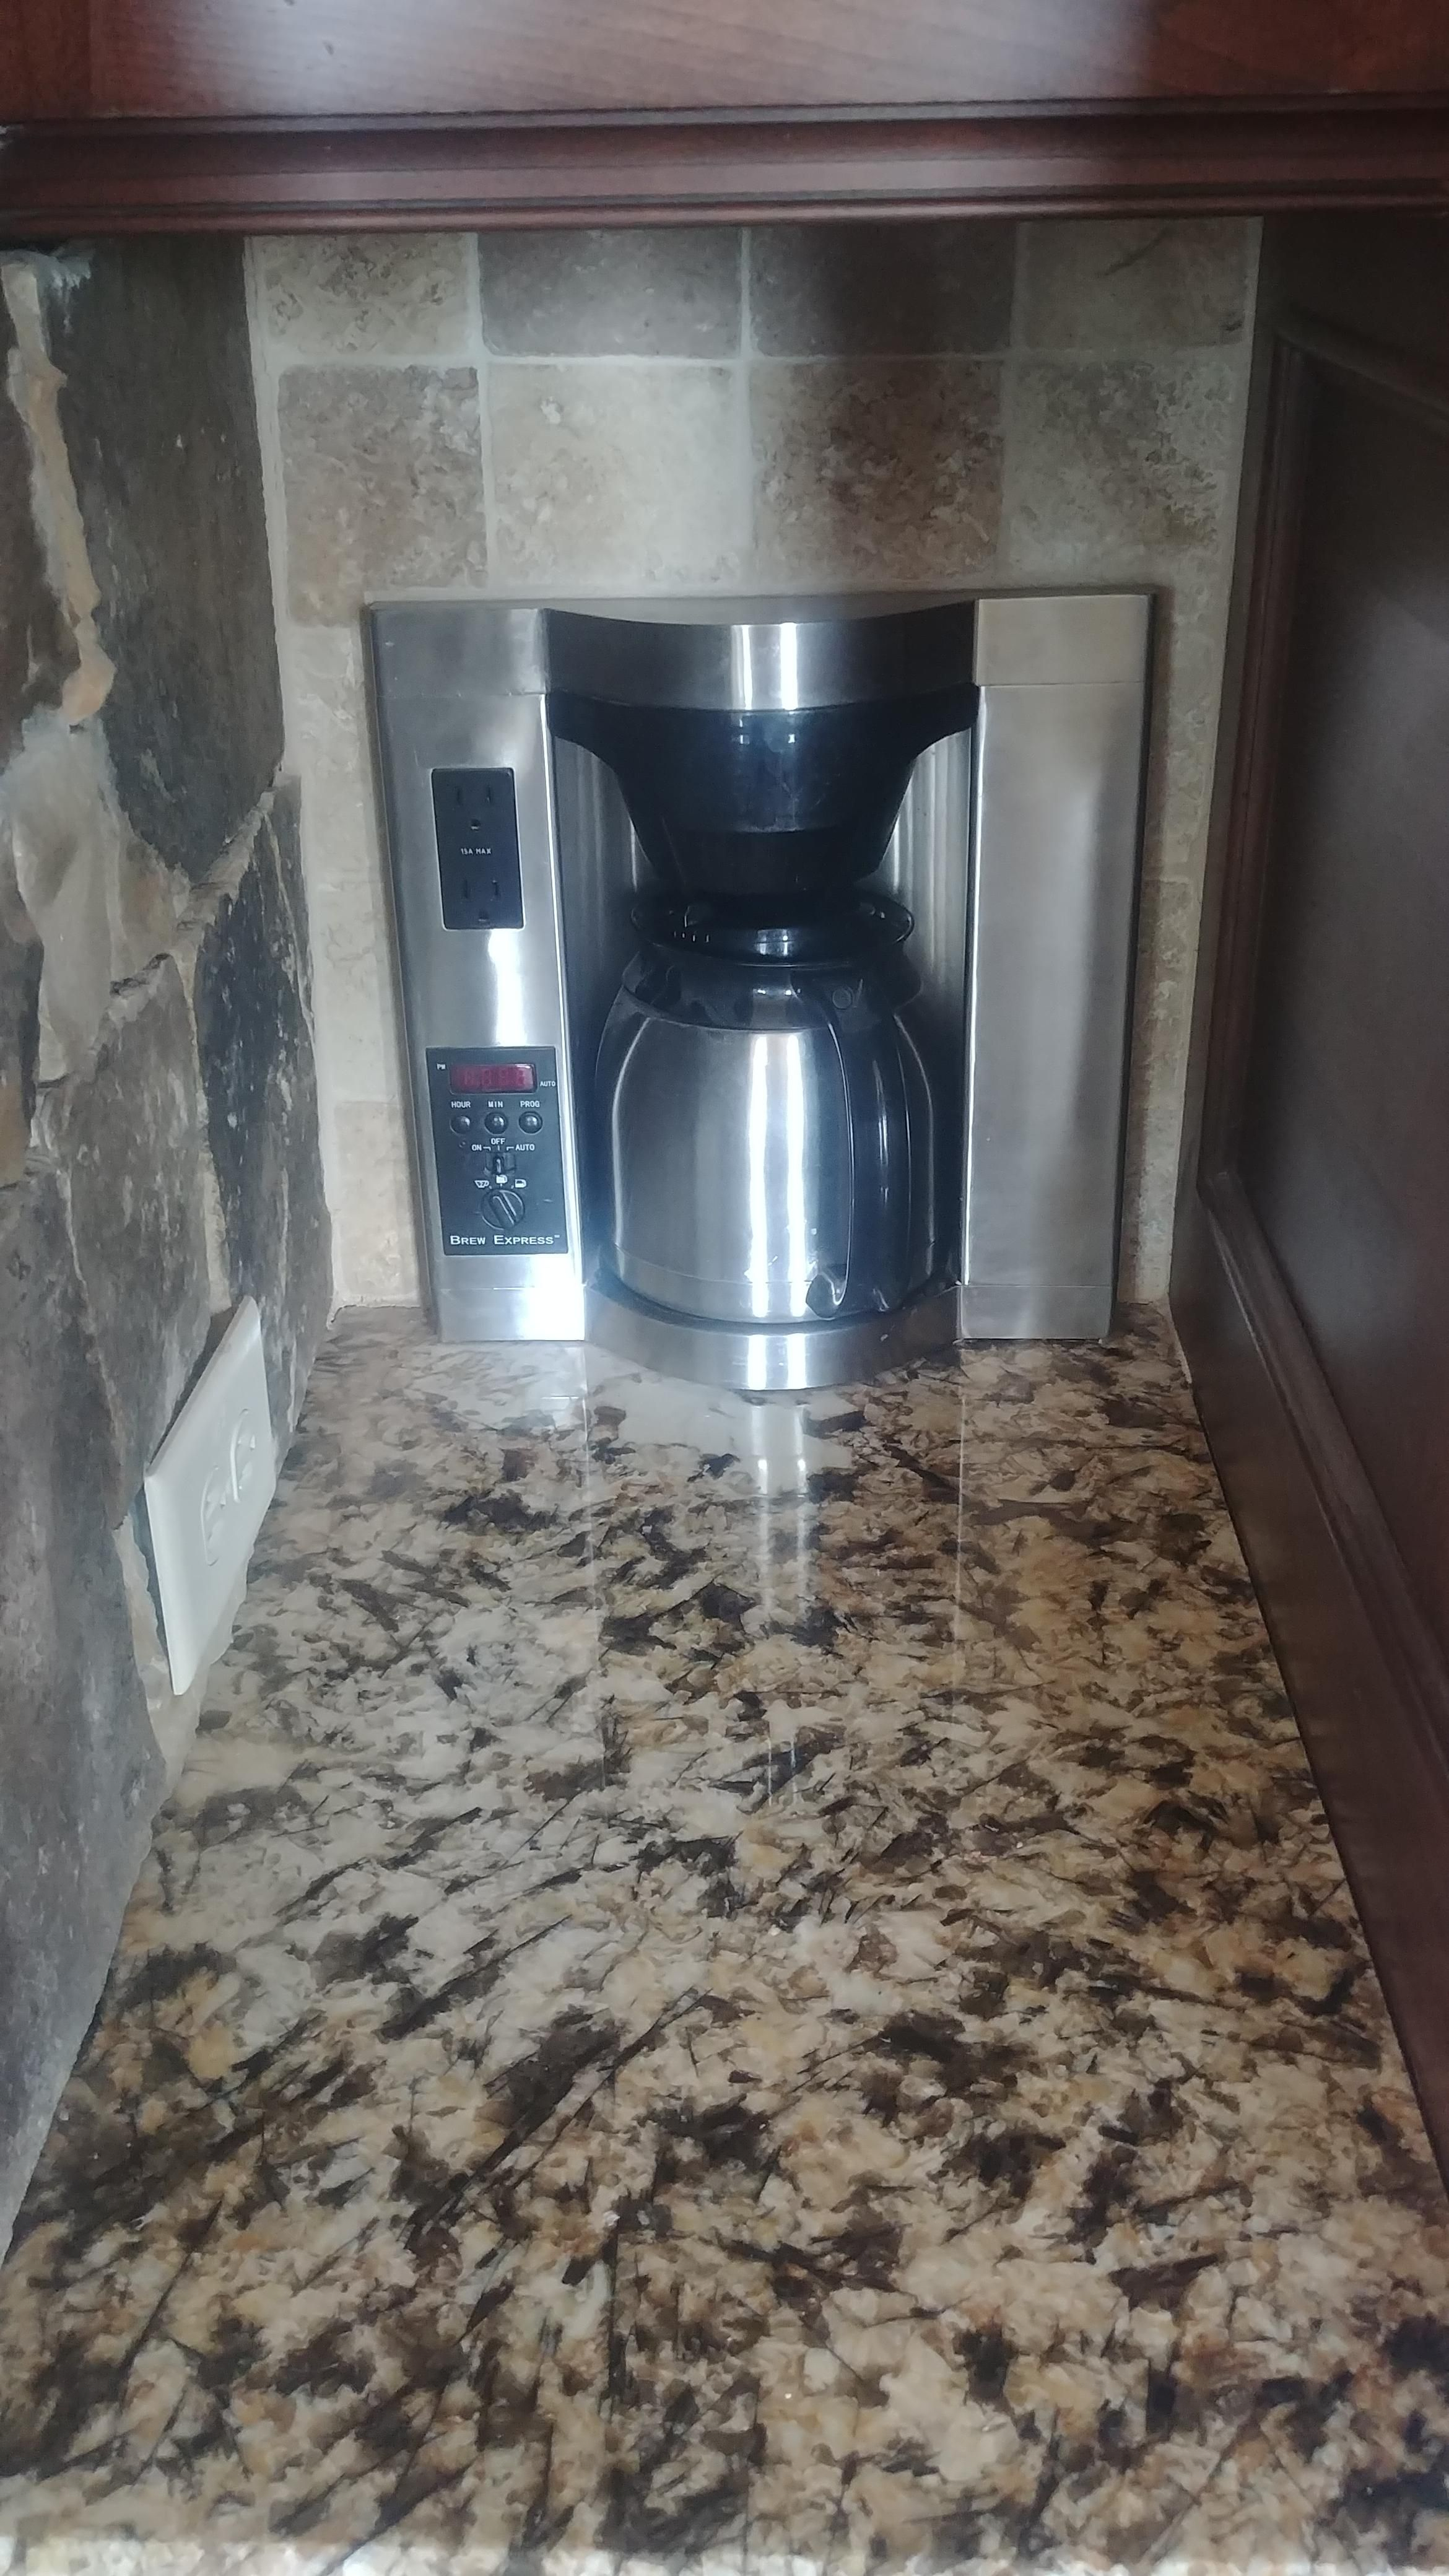 My aunt bought a new house that has a coffee maker built into the